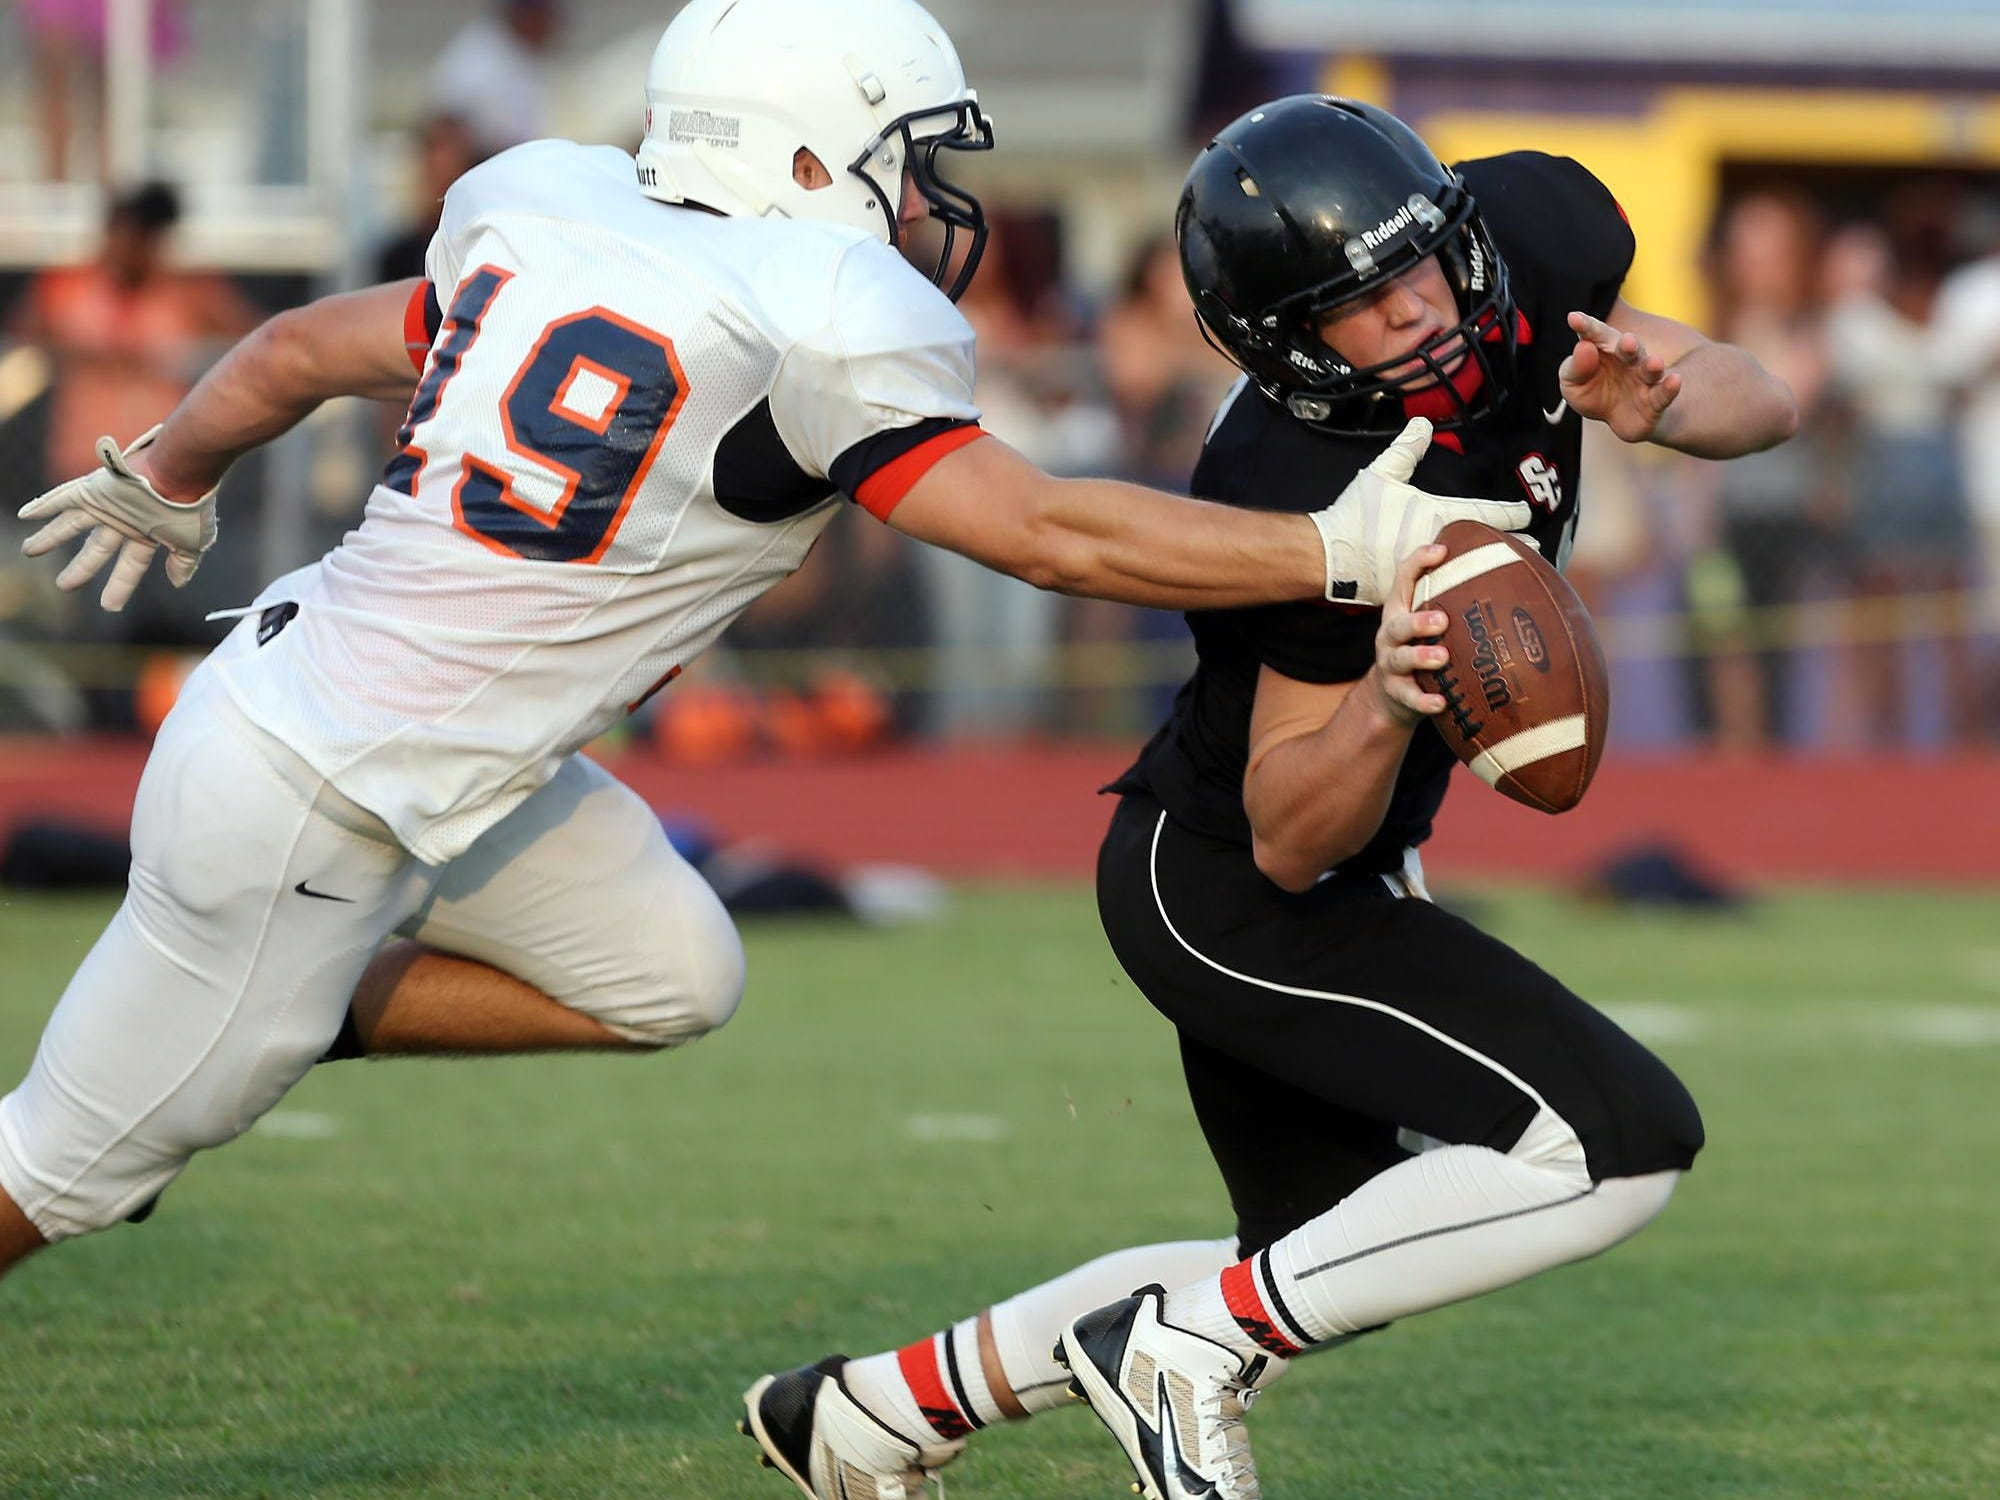 Chris Dye will be the favorite to start at quarterback for Stewarts Creek in 2015.